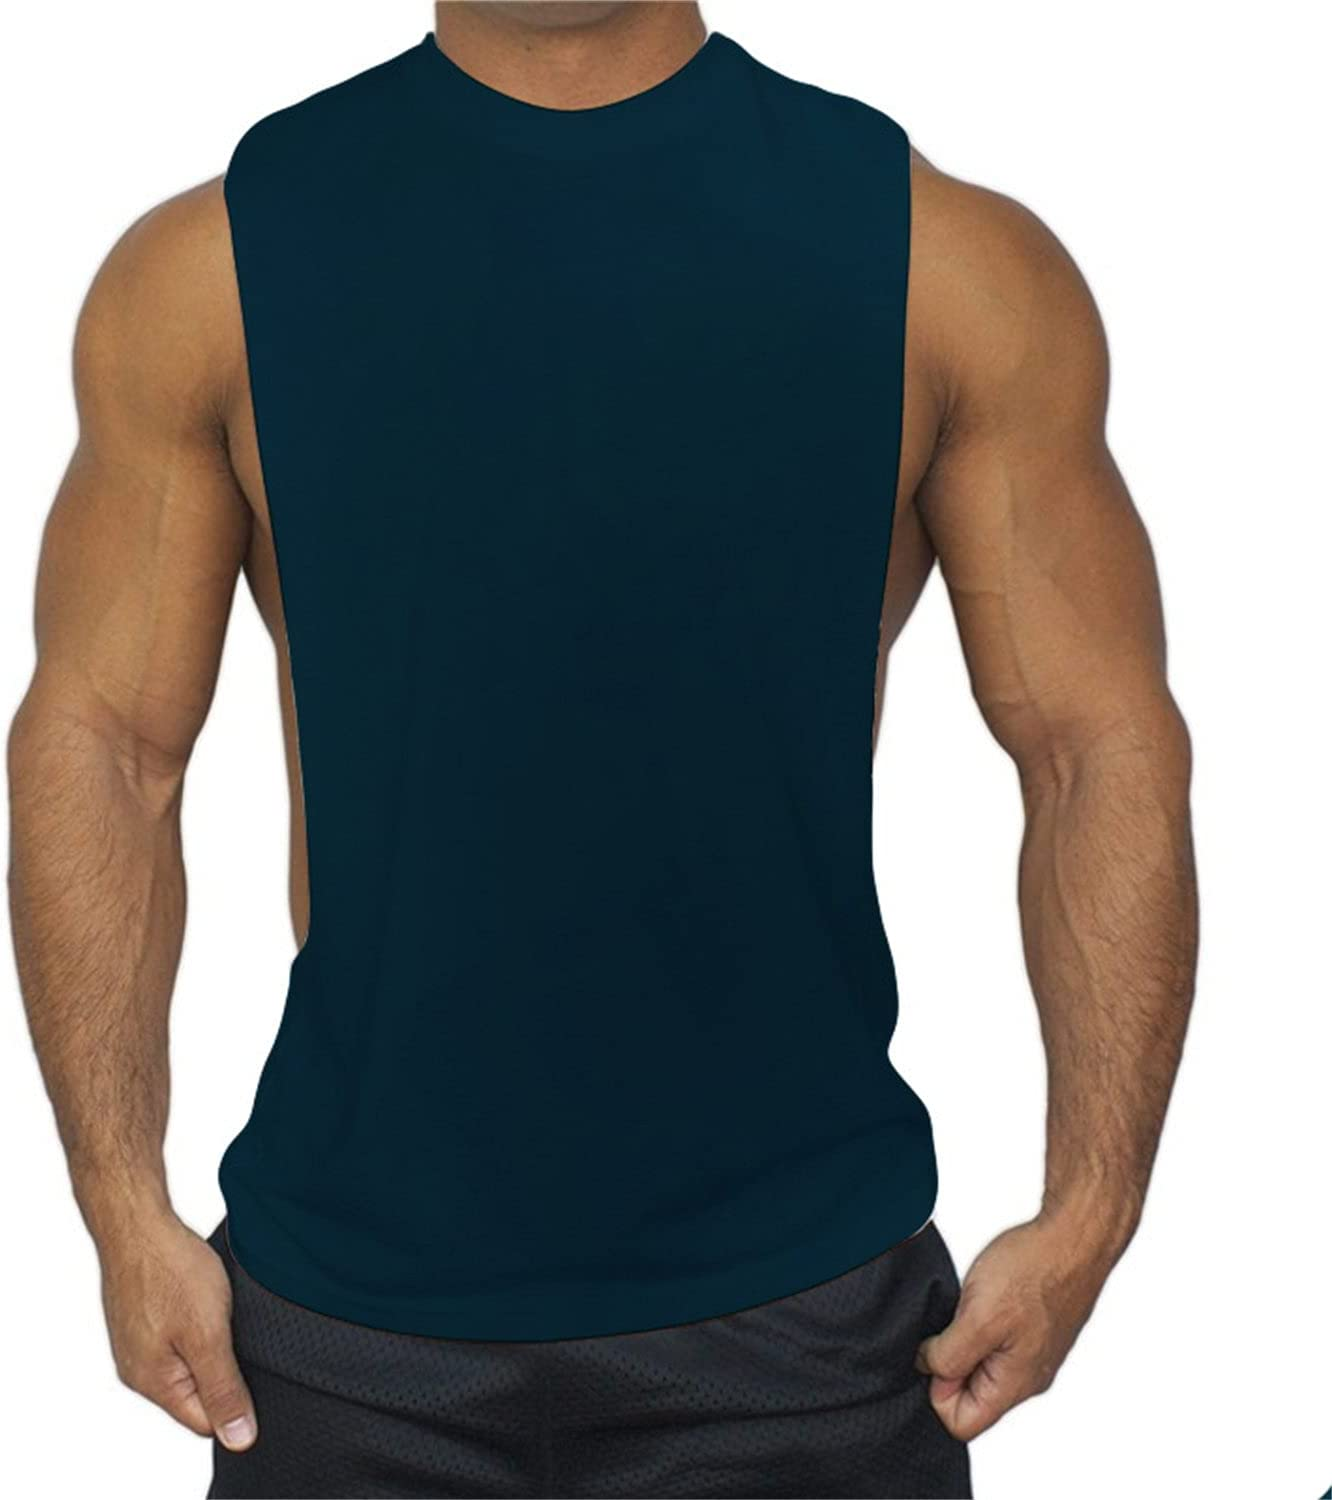 Men's Gym Tank Top Muscle Workout Fort Worth Mall Tees L Sleeveless Mail order Bodybuilding